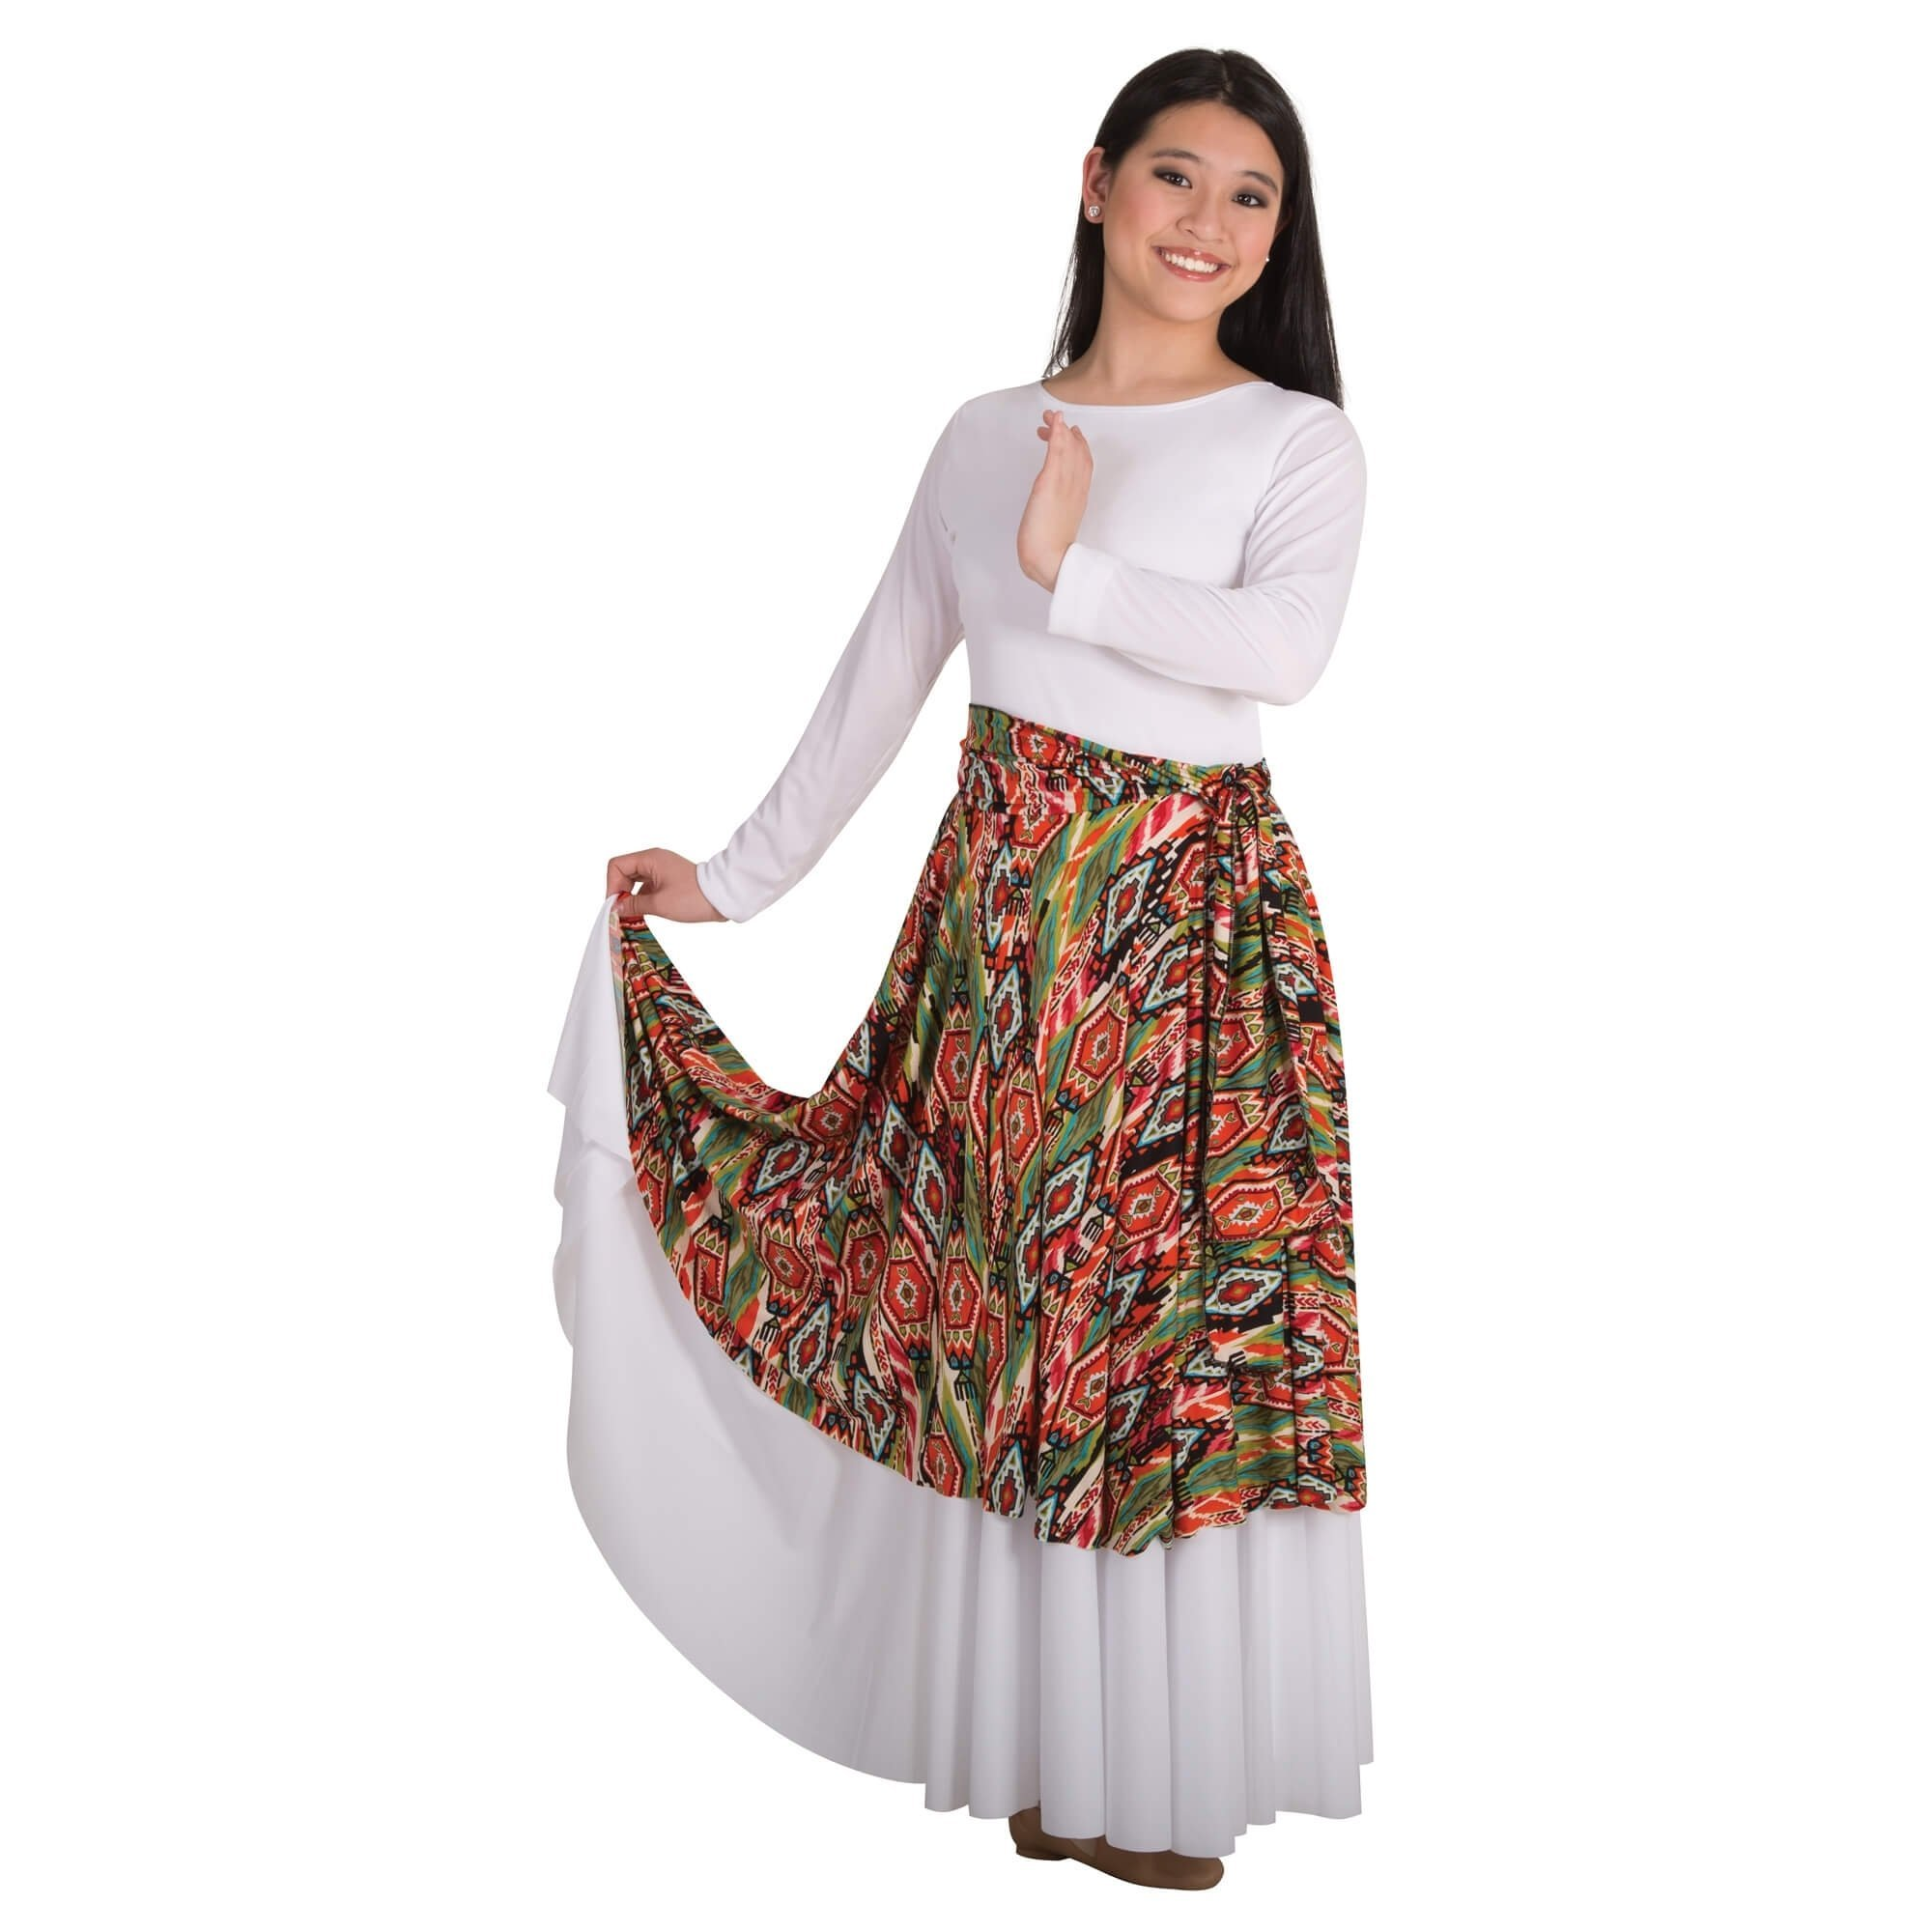 Body Wrappers Praise Dance Printed Flowing Panel Tunic/Skirt